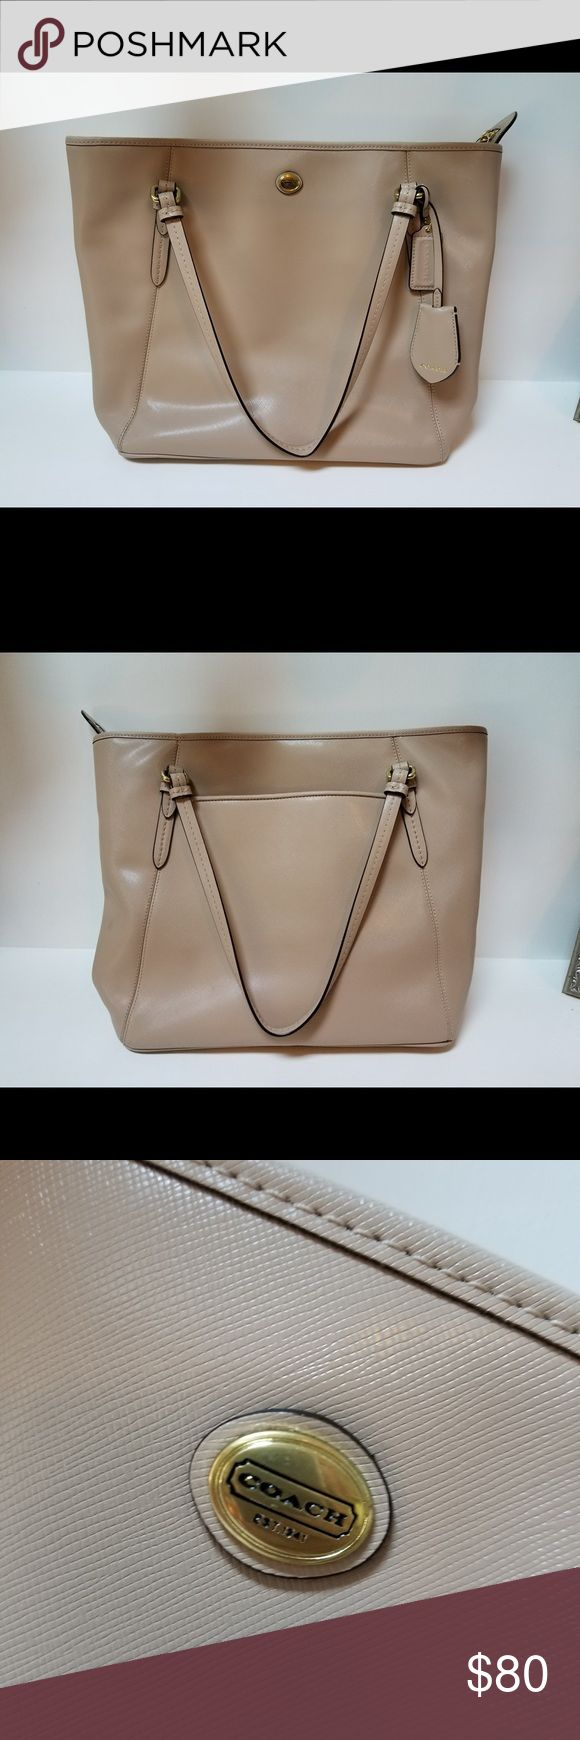 Coach tote bag Coach tote bag. Gently used and in great condition minus two small stains on the inside of the pocket on the outside, but not visible to the outside world. Plenty of room and pouches for storage. Coach Bags Totes